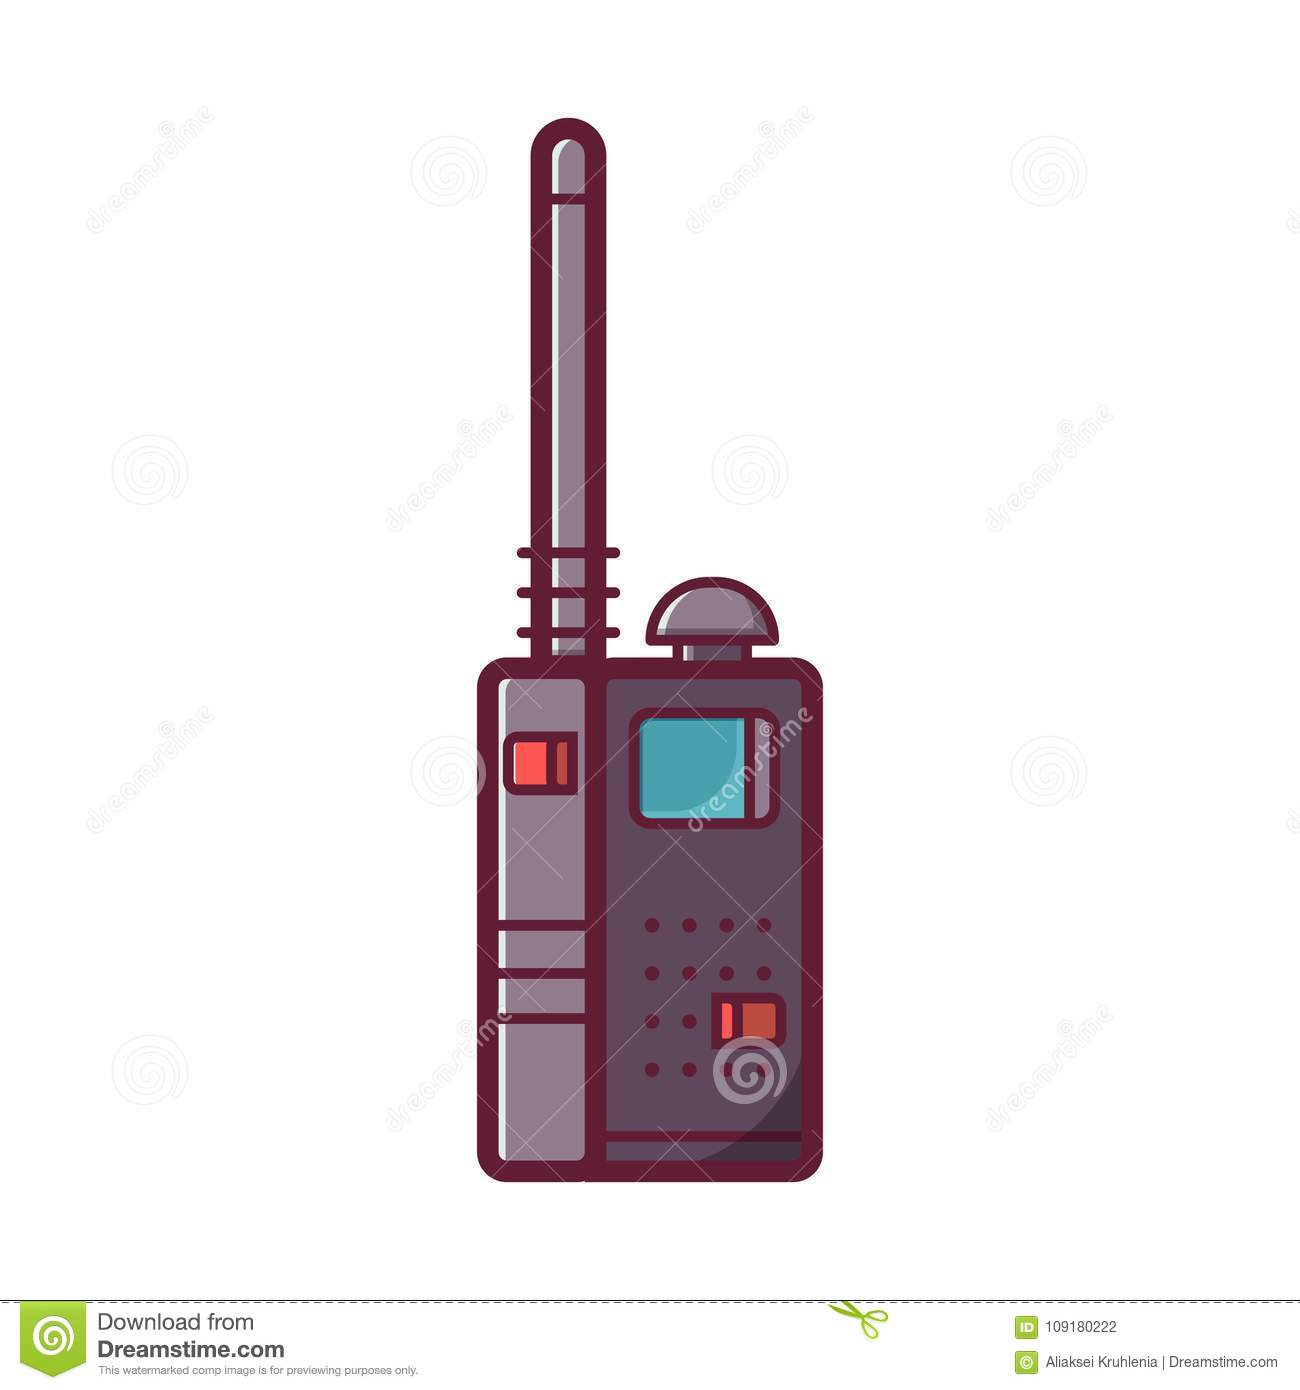 Download Gambar Walkie Talkie Sketsa Sketsa Gambar